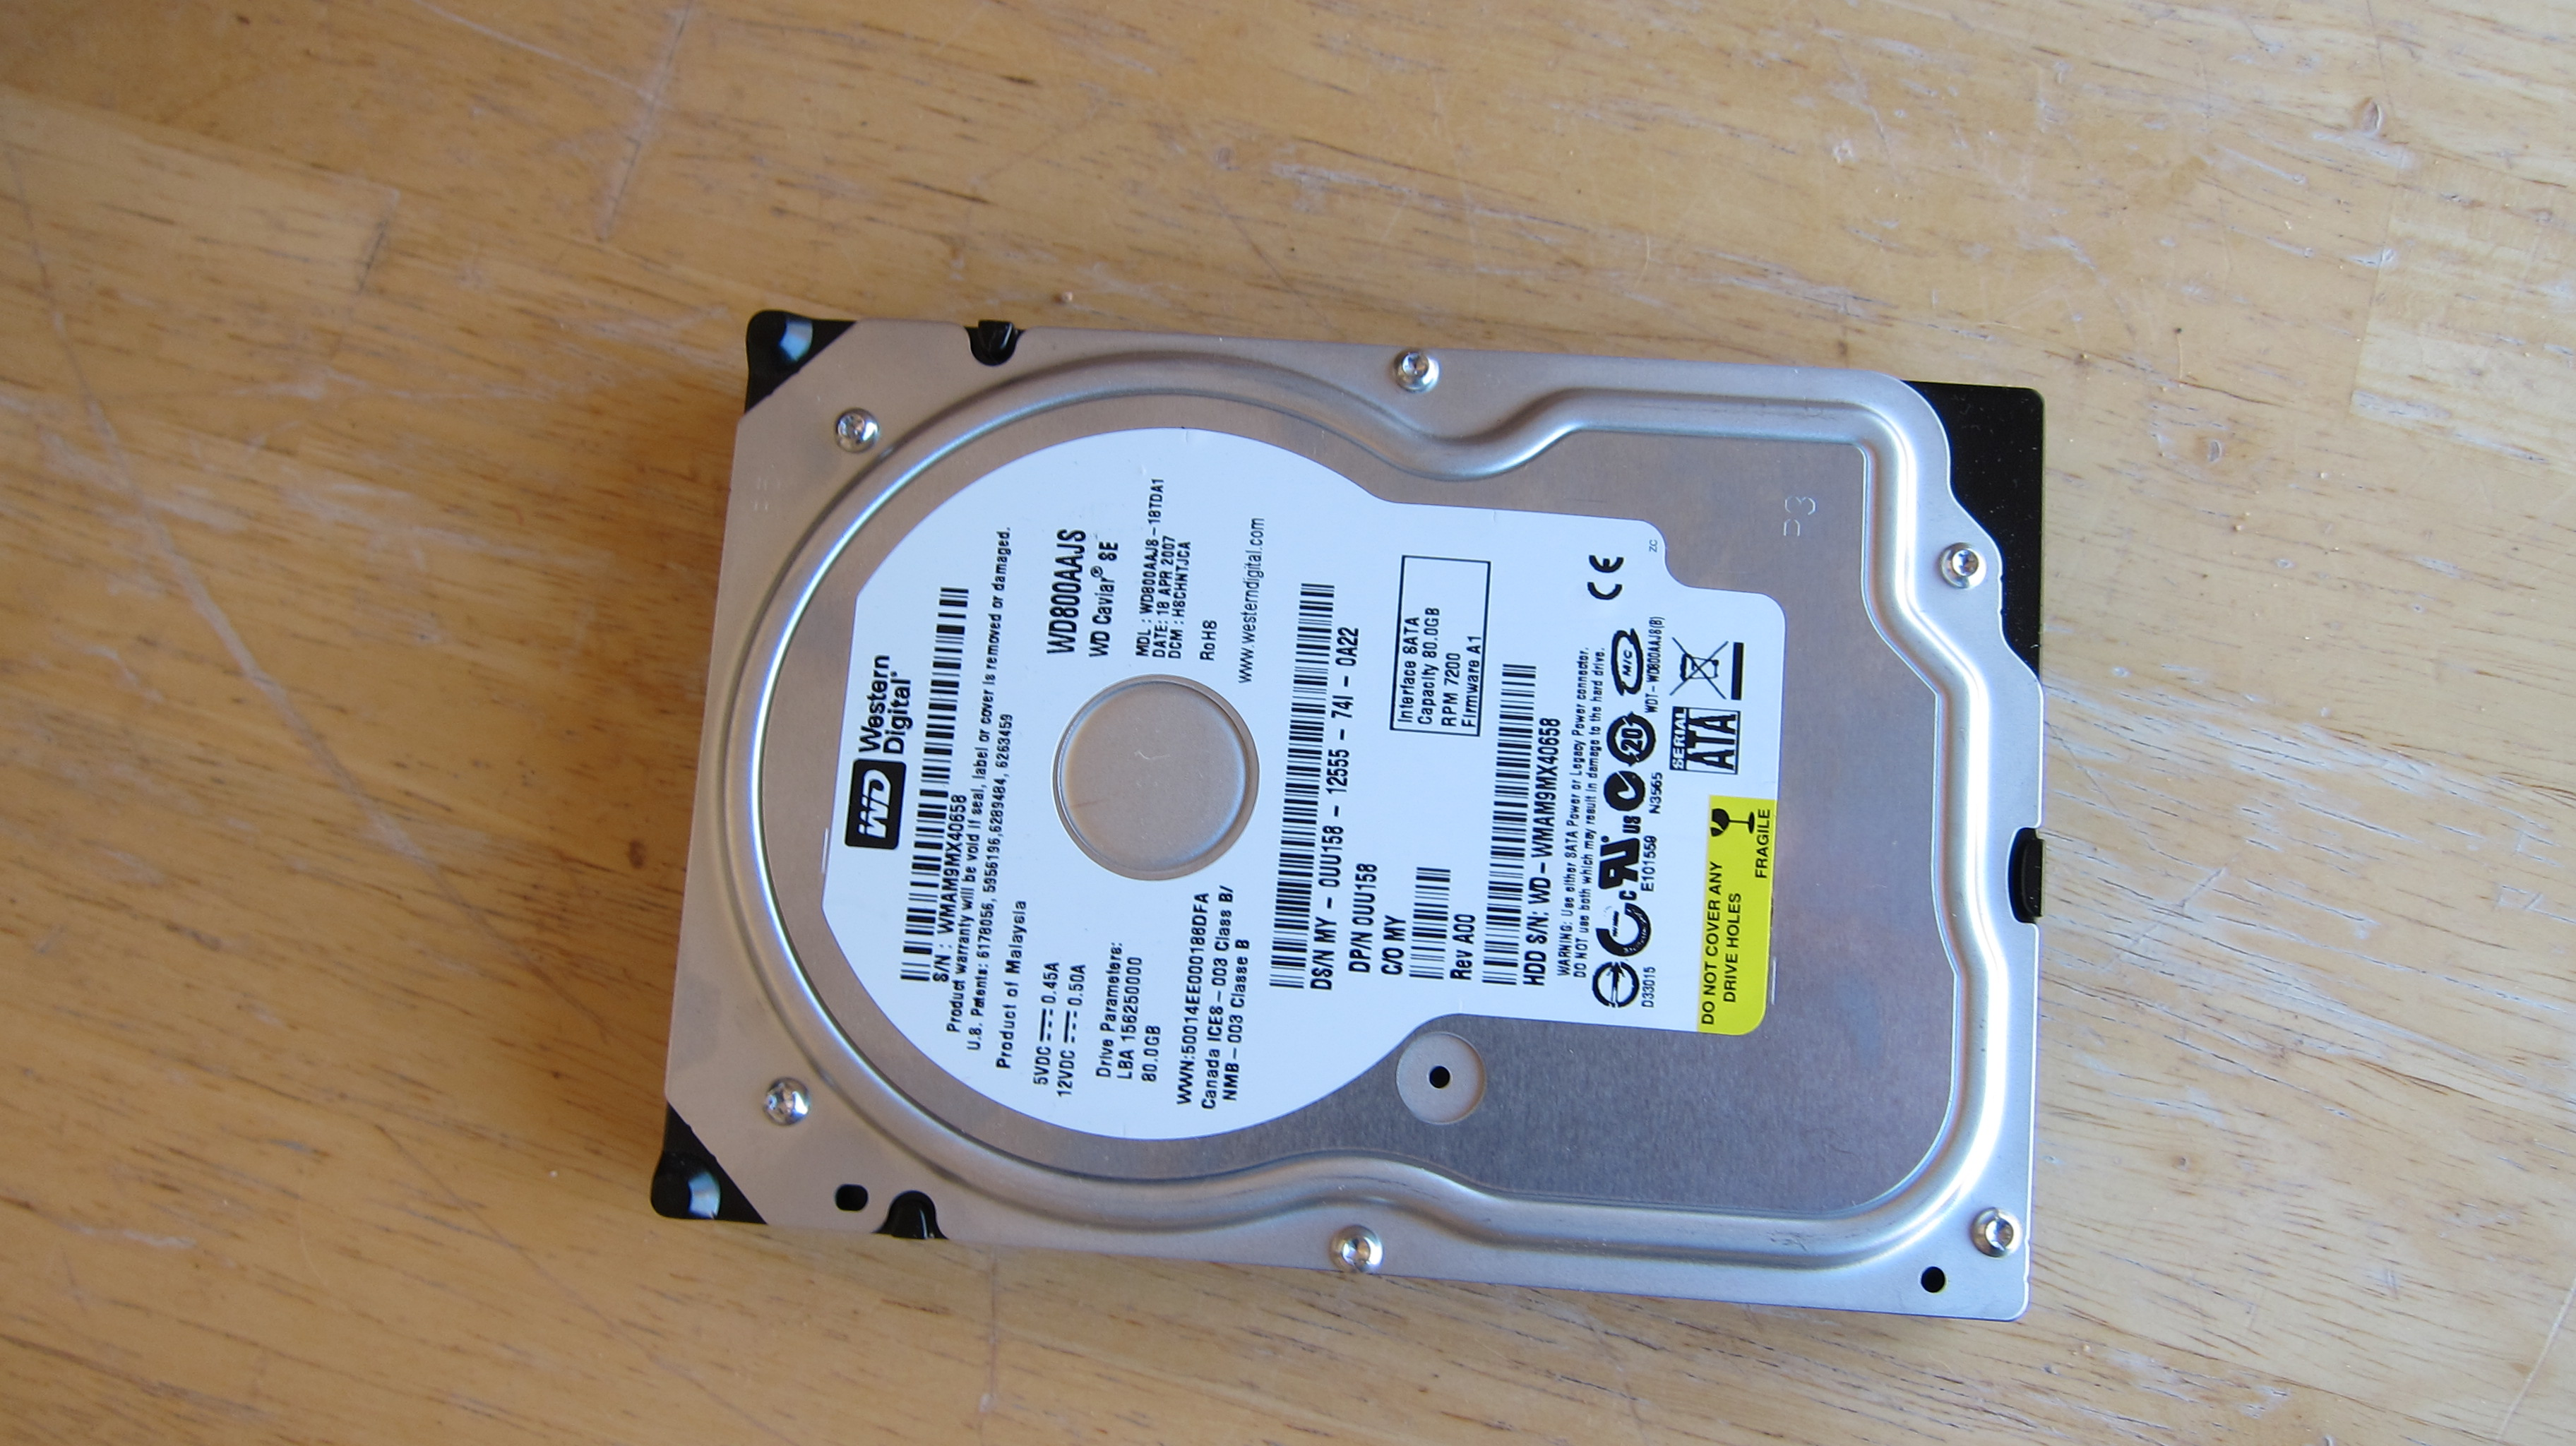 Western Digital hard drive removed from a working system